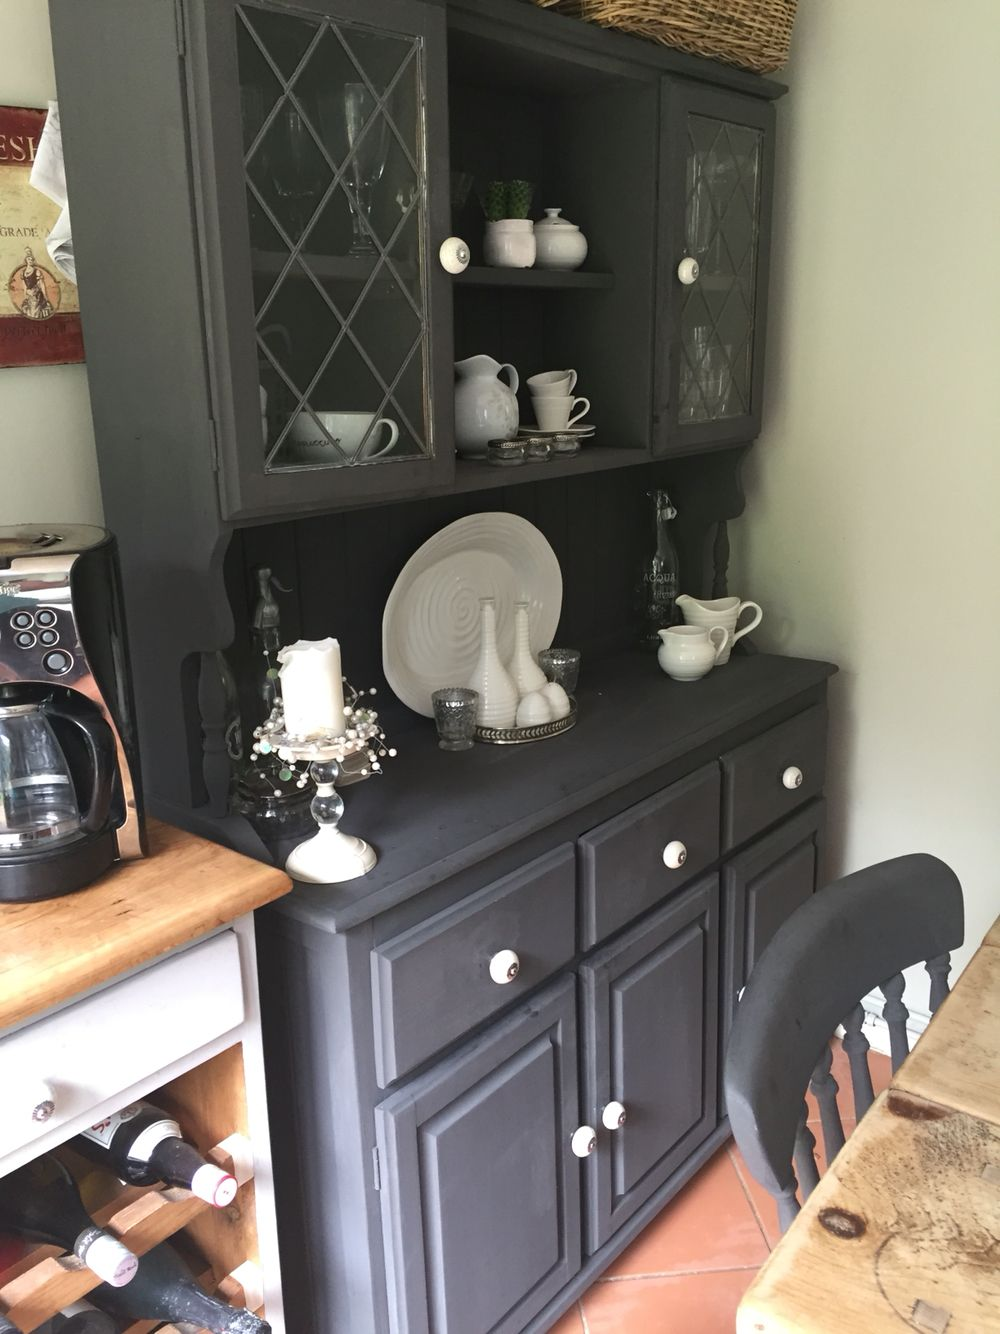 Pine dresser painted in rustoleum chalk paint in graphite, watered down  paint slightly to achieve